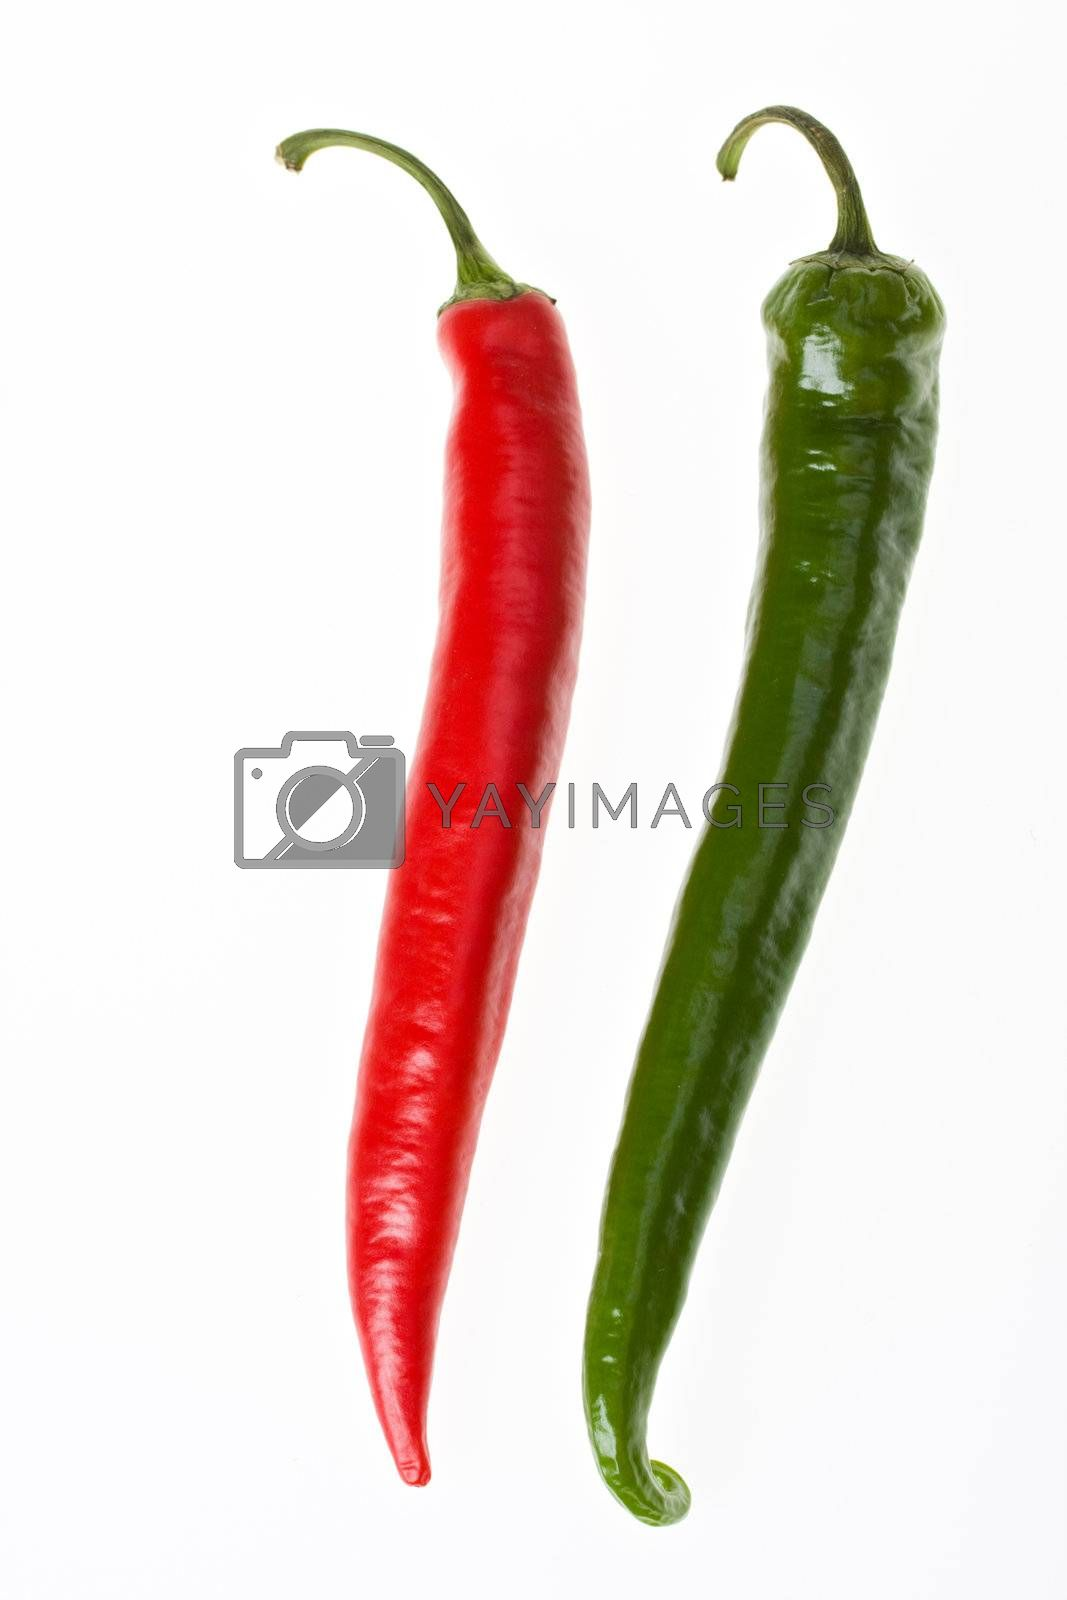 red and green hot chilli peppers on white background